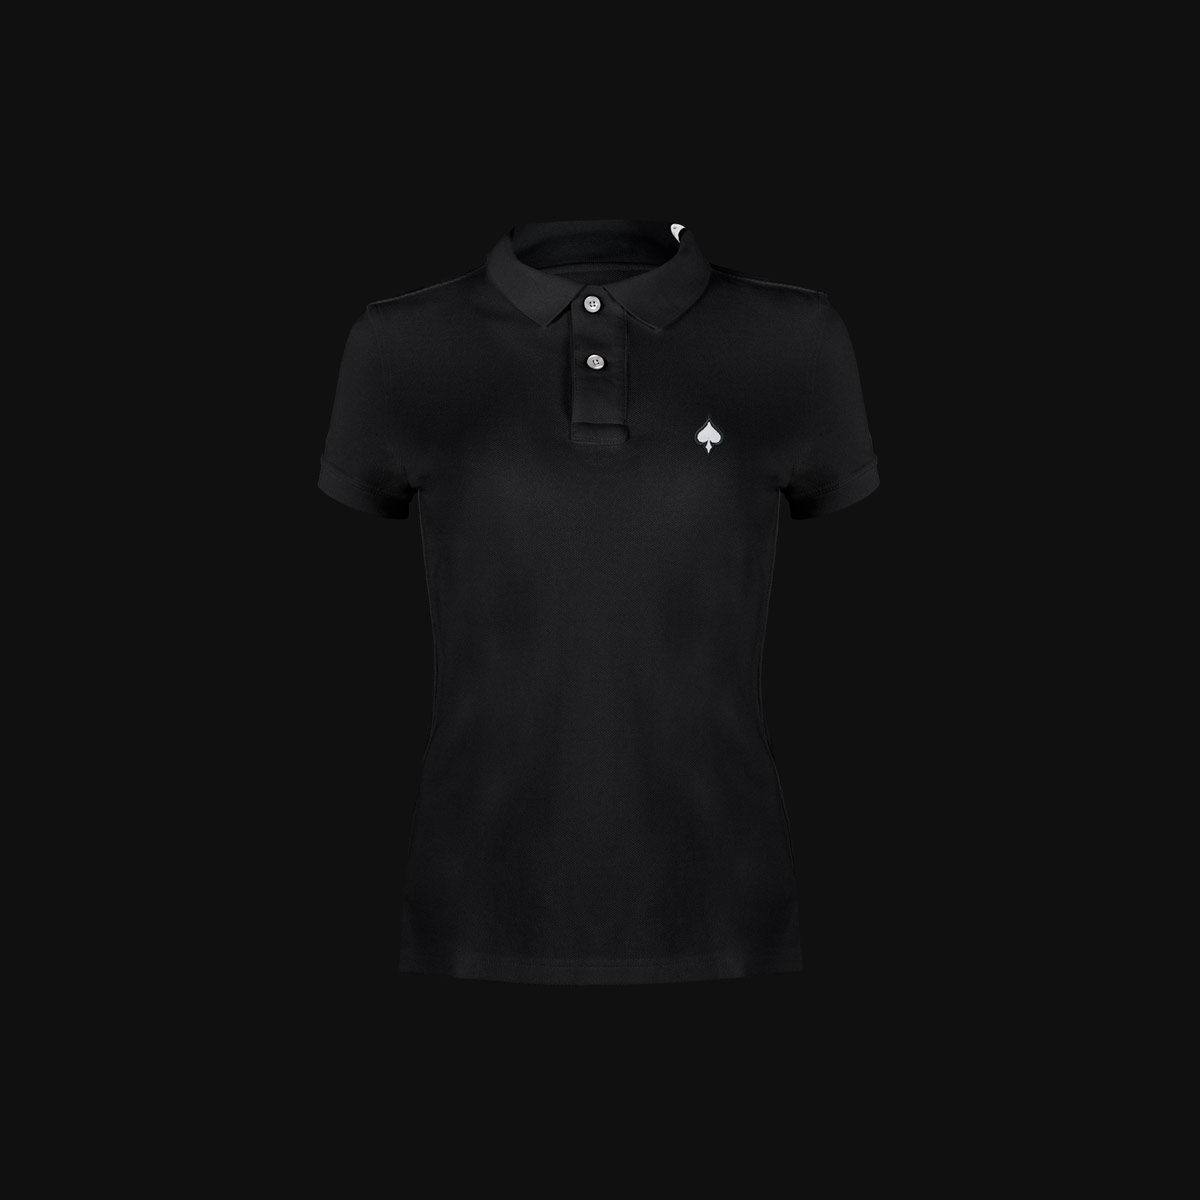 The Black Ace polo for woman